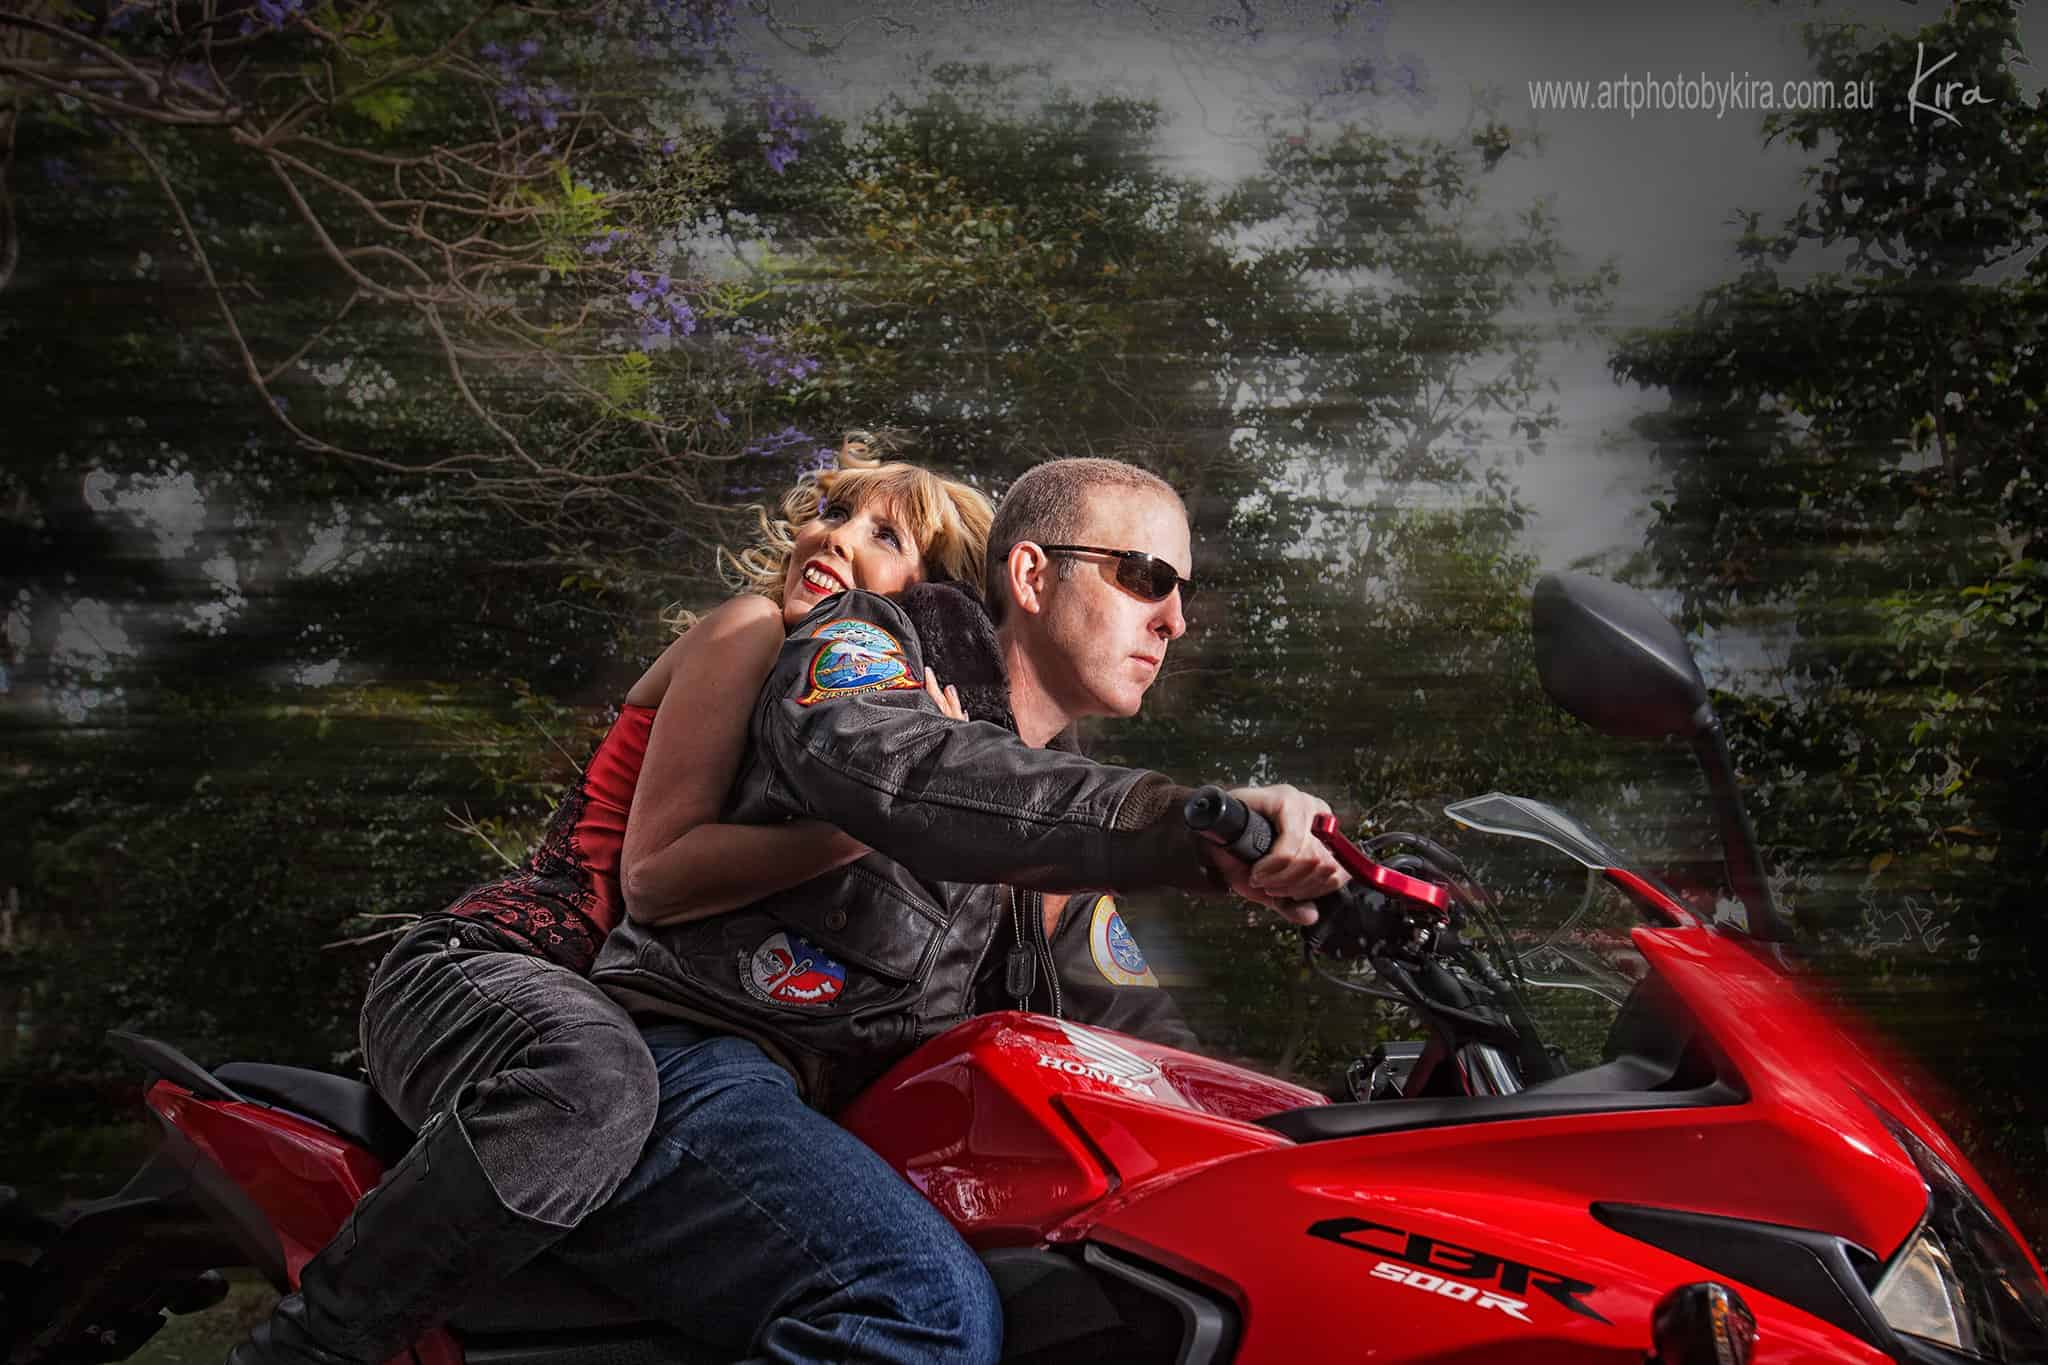 couples portrait photography motorcycle